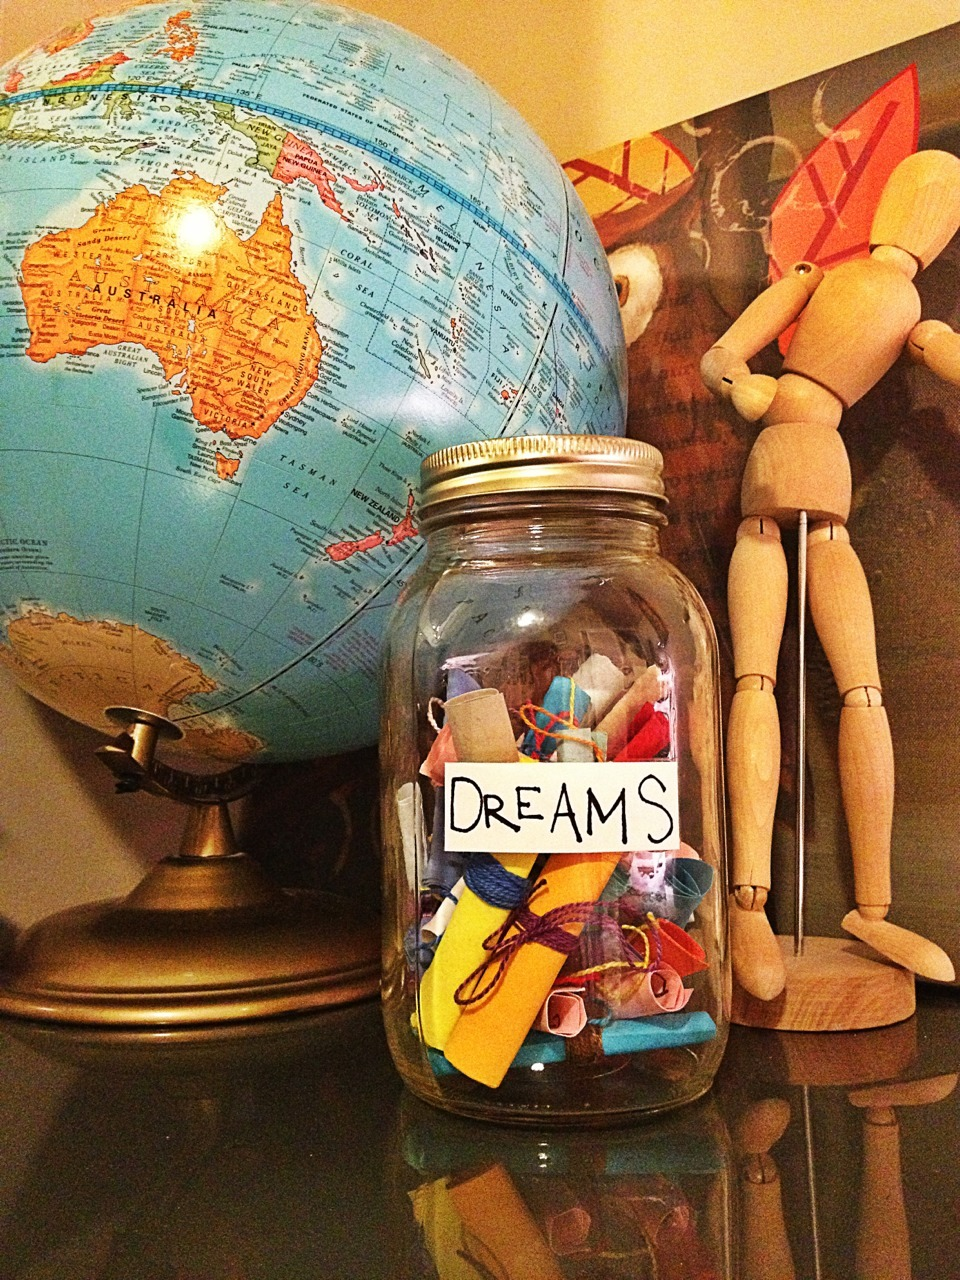 The Dream Jar ✨